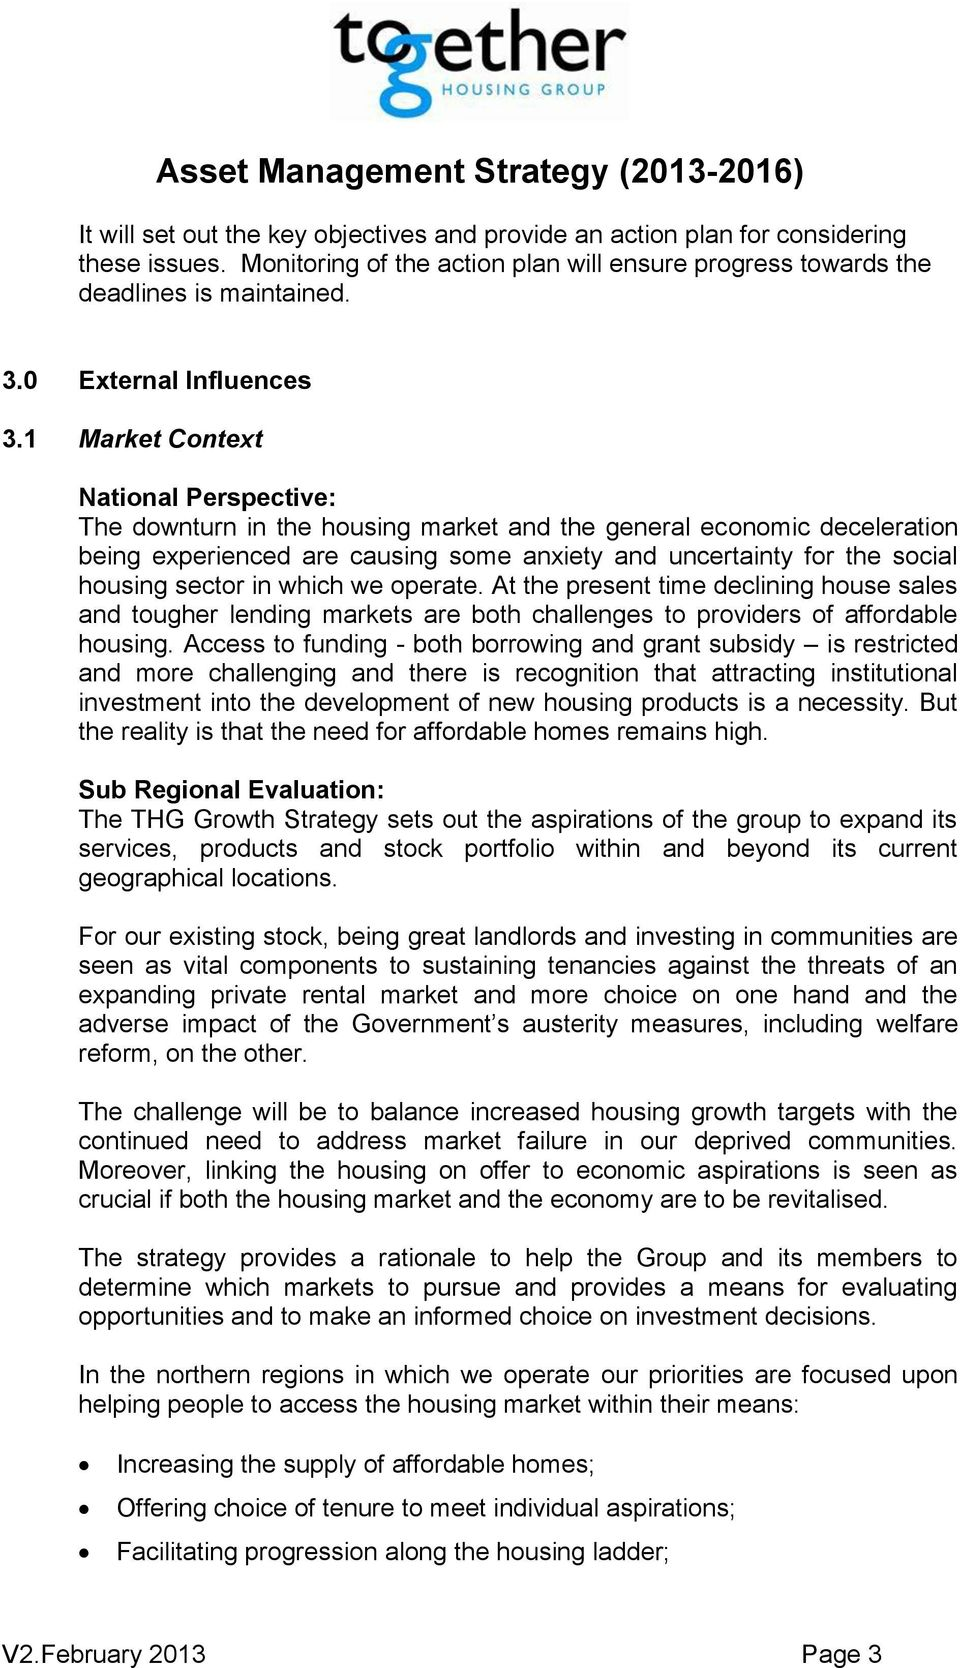 1 Market Context National Perspective: The downturn in the housing market and the general economic deceleration being experienced are causing some anxiety and uncertainty for the social housing